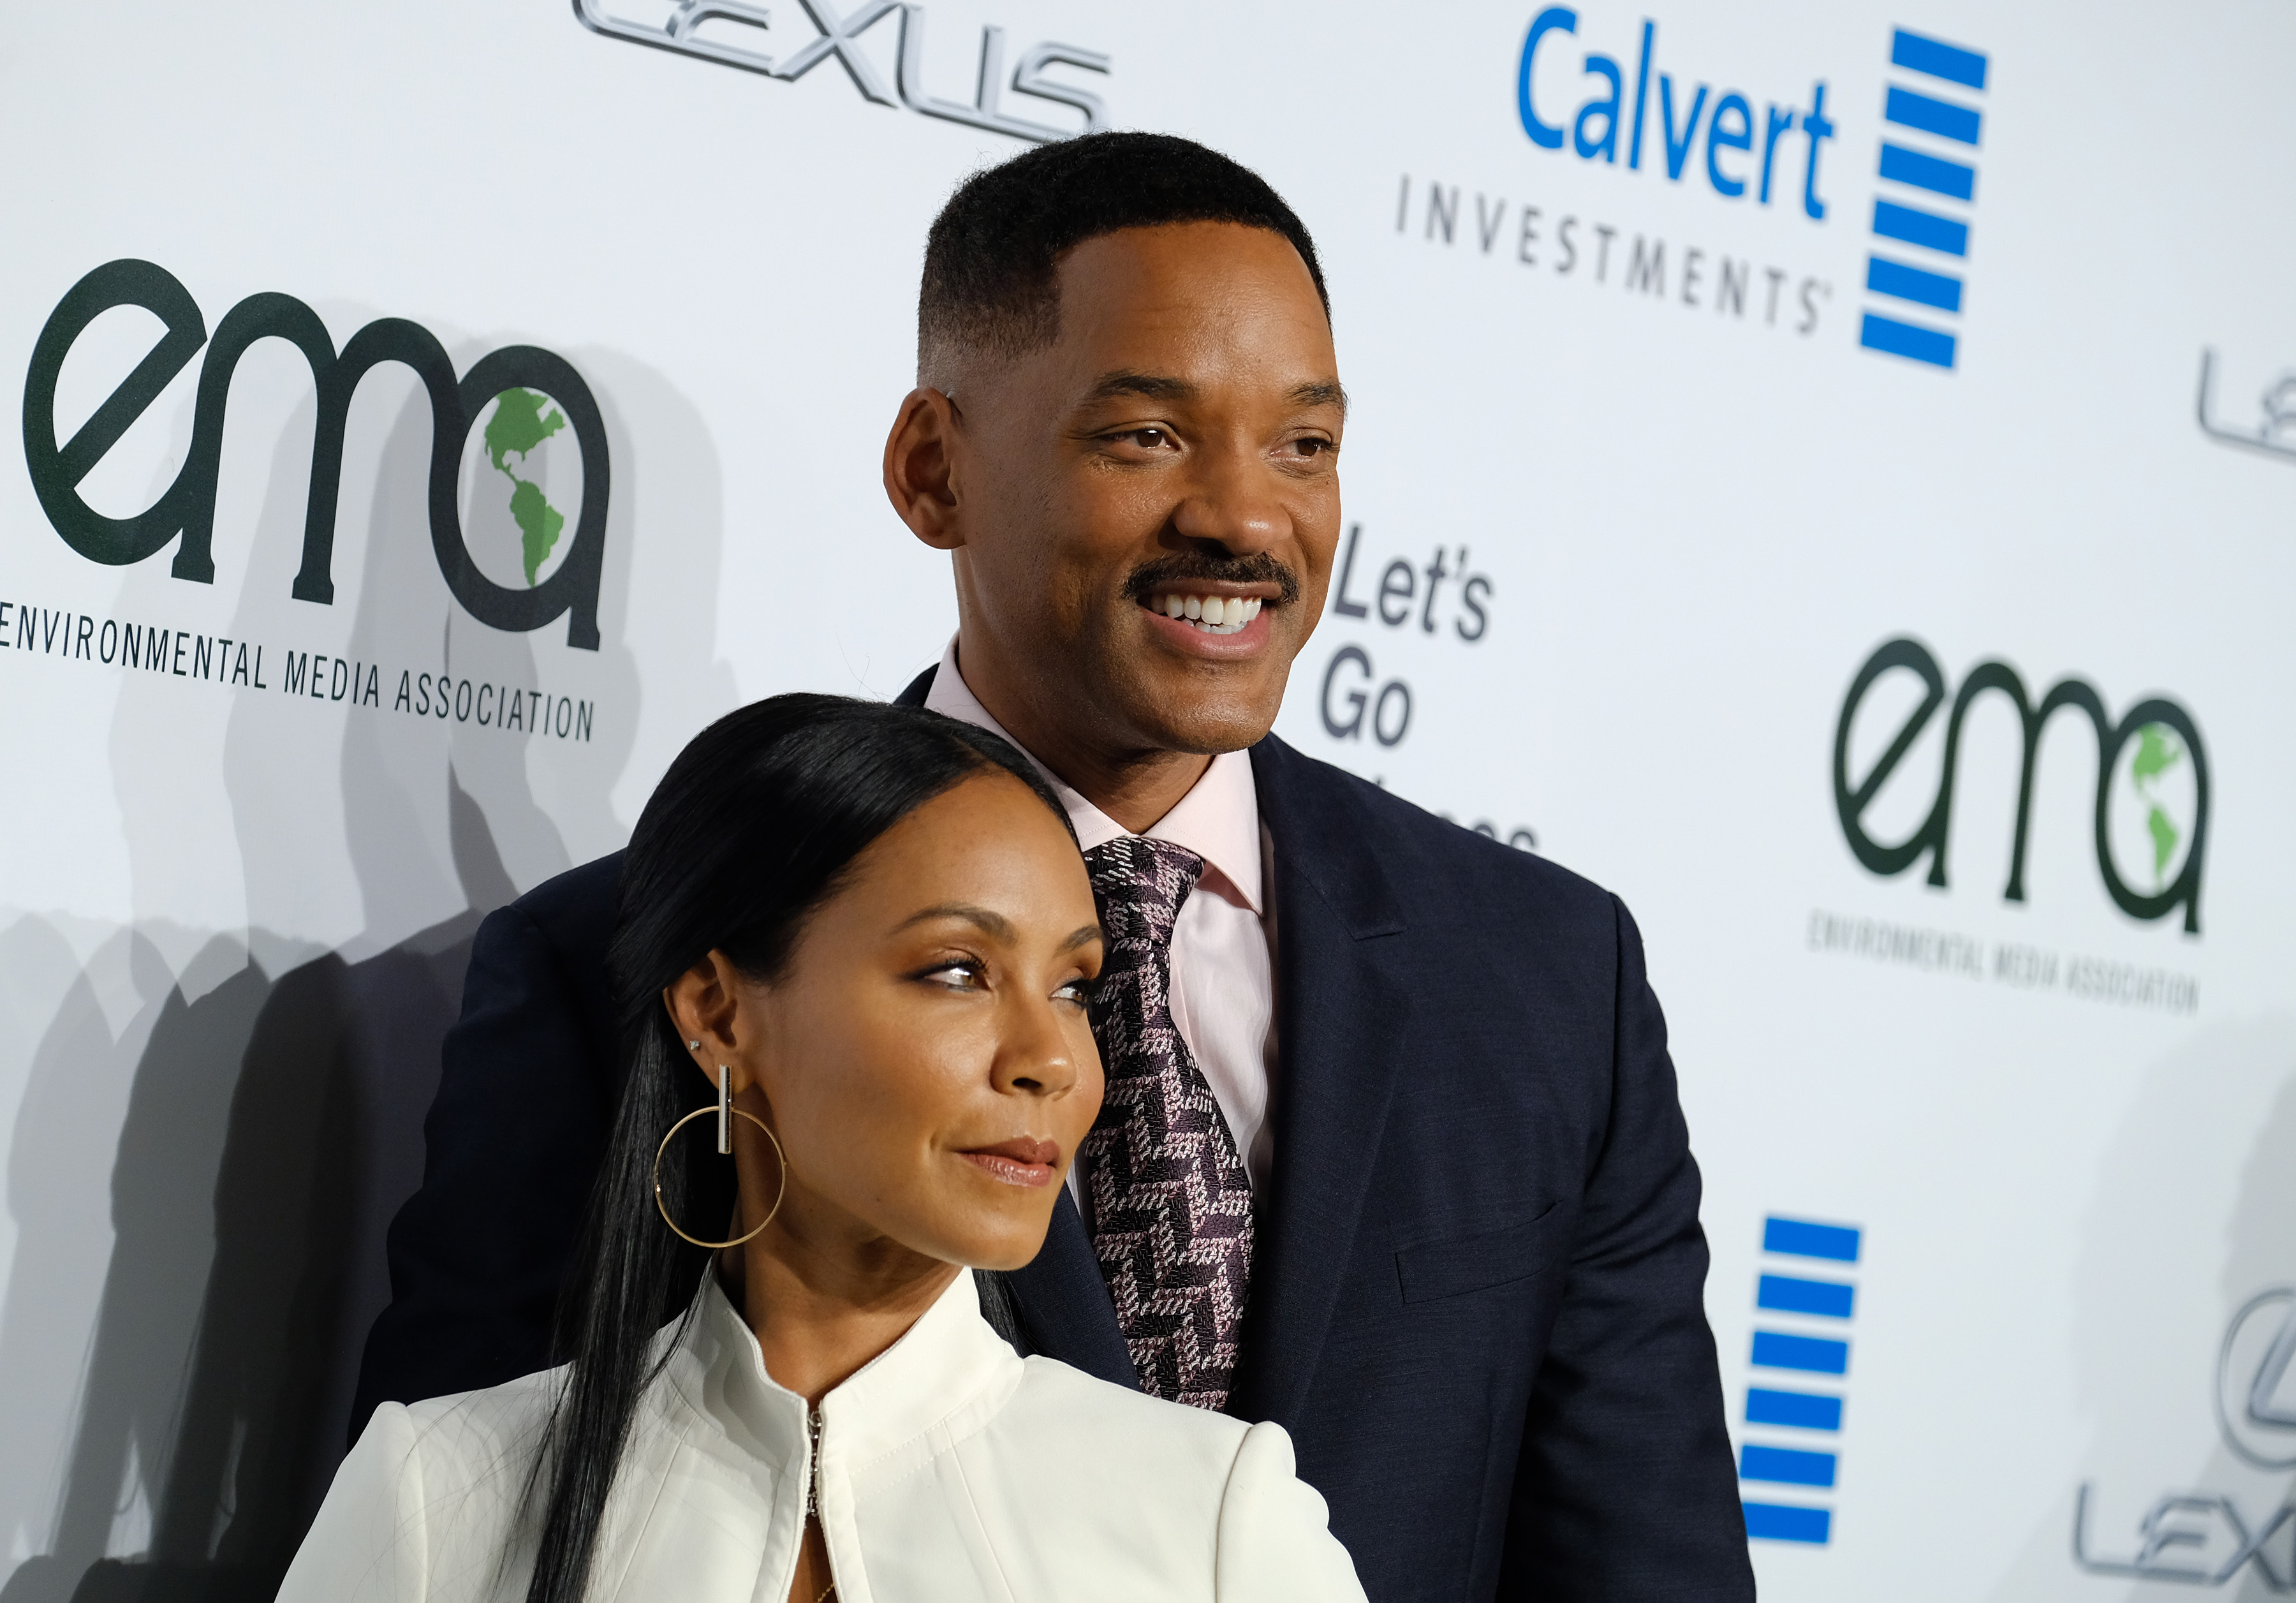 Jada Pinkett Smith never wanted to marry Will Smith: 'I cried the whole way down the aisle'